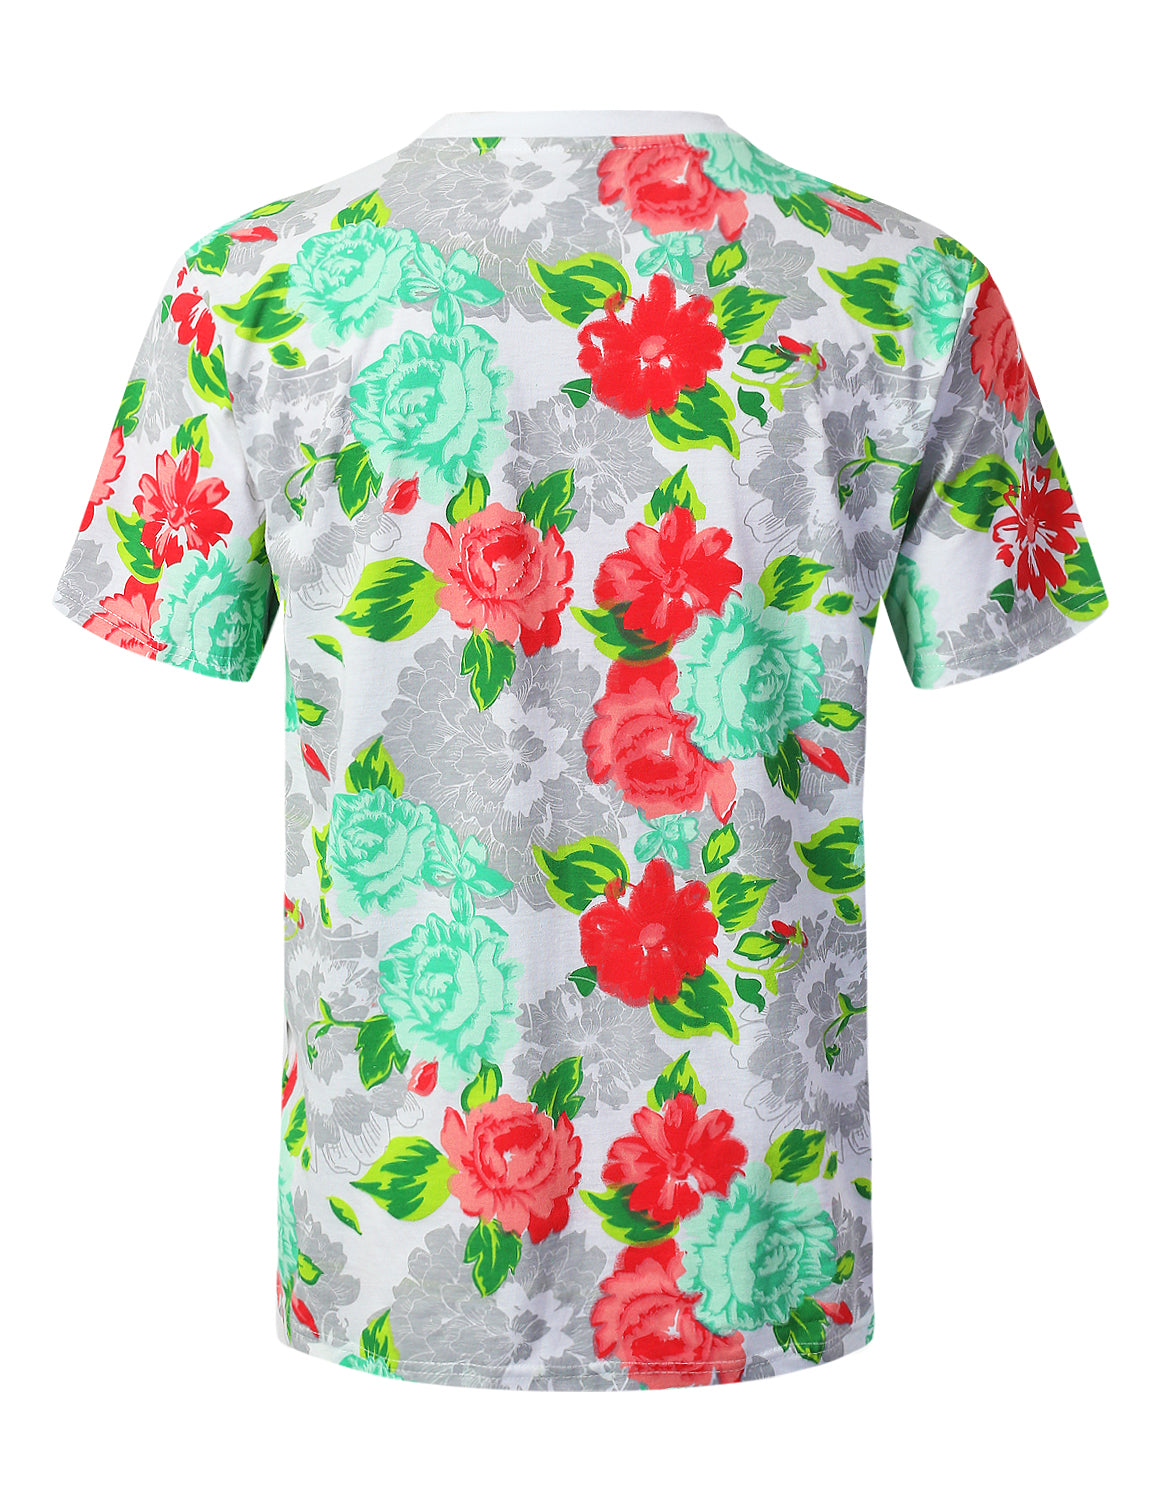 WHITE Hope Flower Graphic Print T-shirt - URBANCREWS